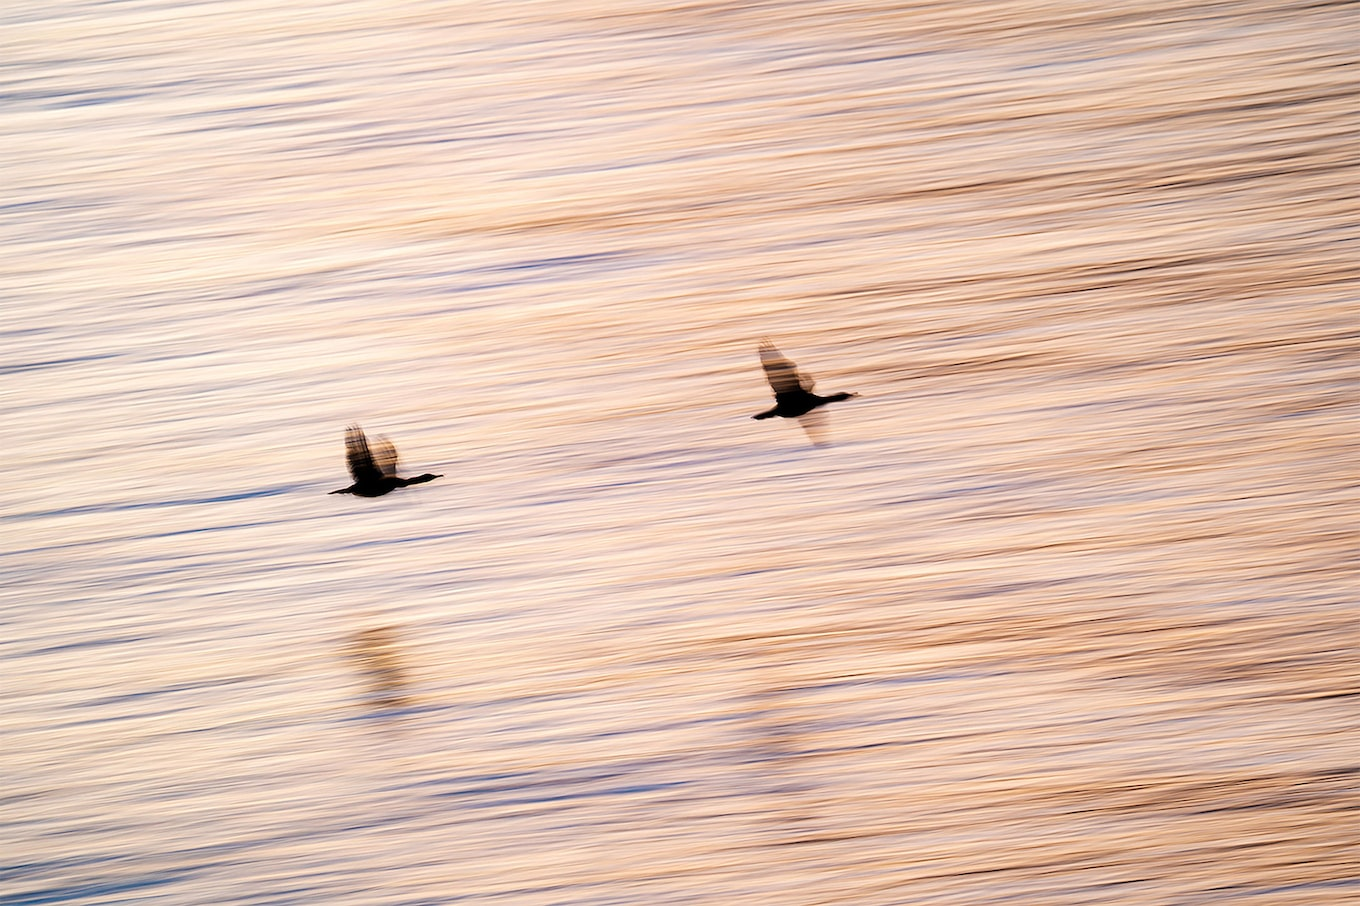 floris smeets sony alpha 9 silhouettes of two birds flying